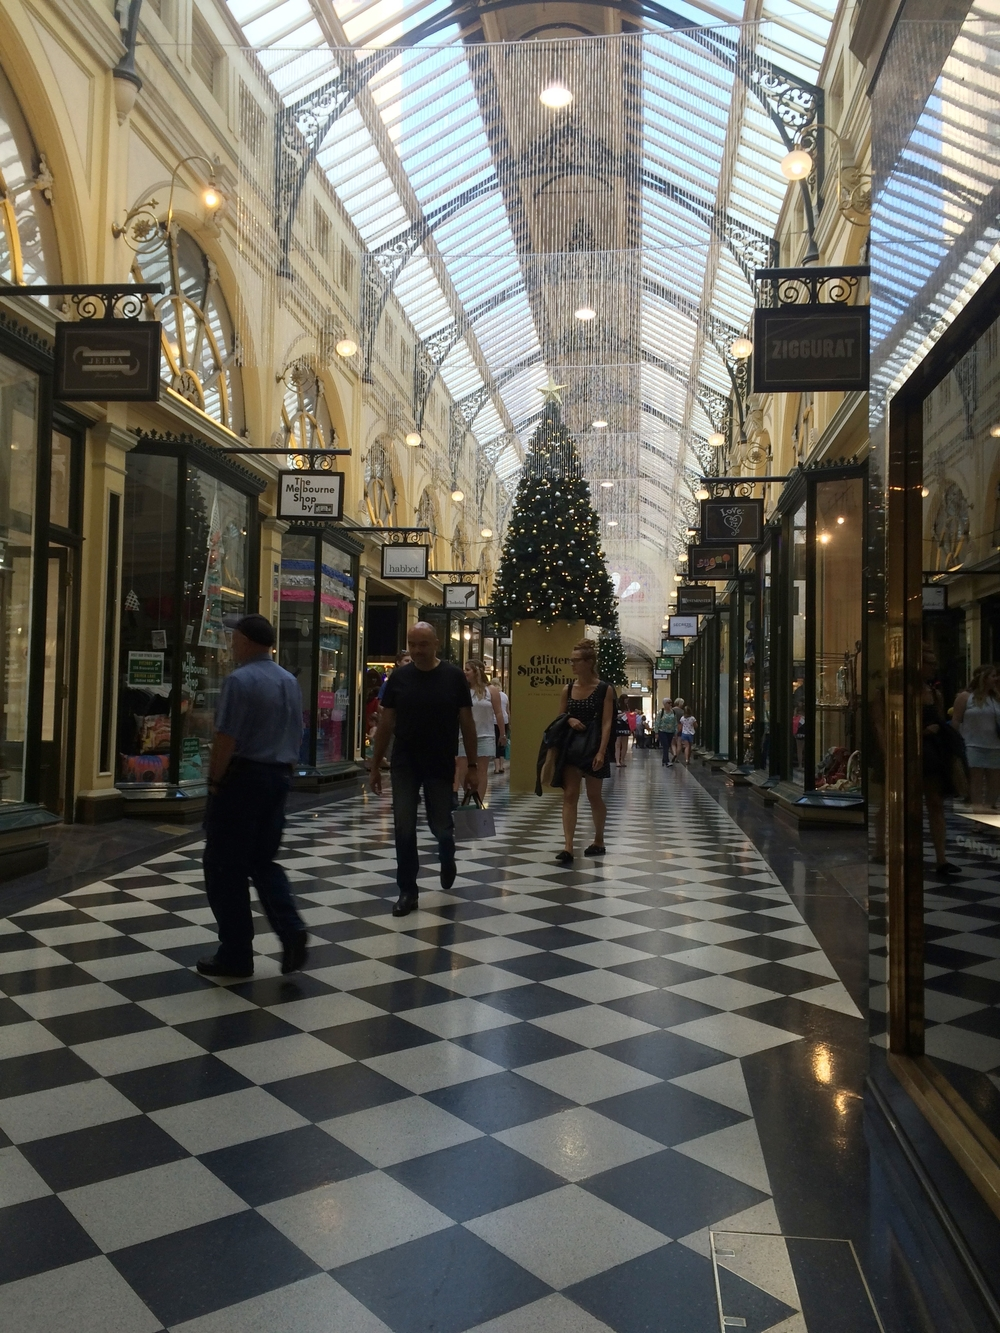 Arcade shopping in Melbourne: yup, you guessed it - open on Sundays!